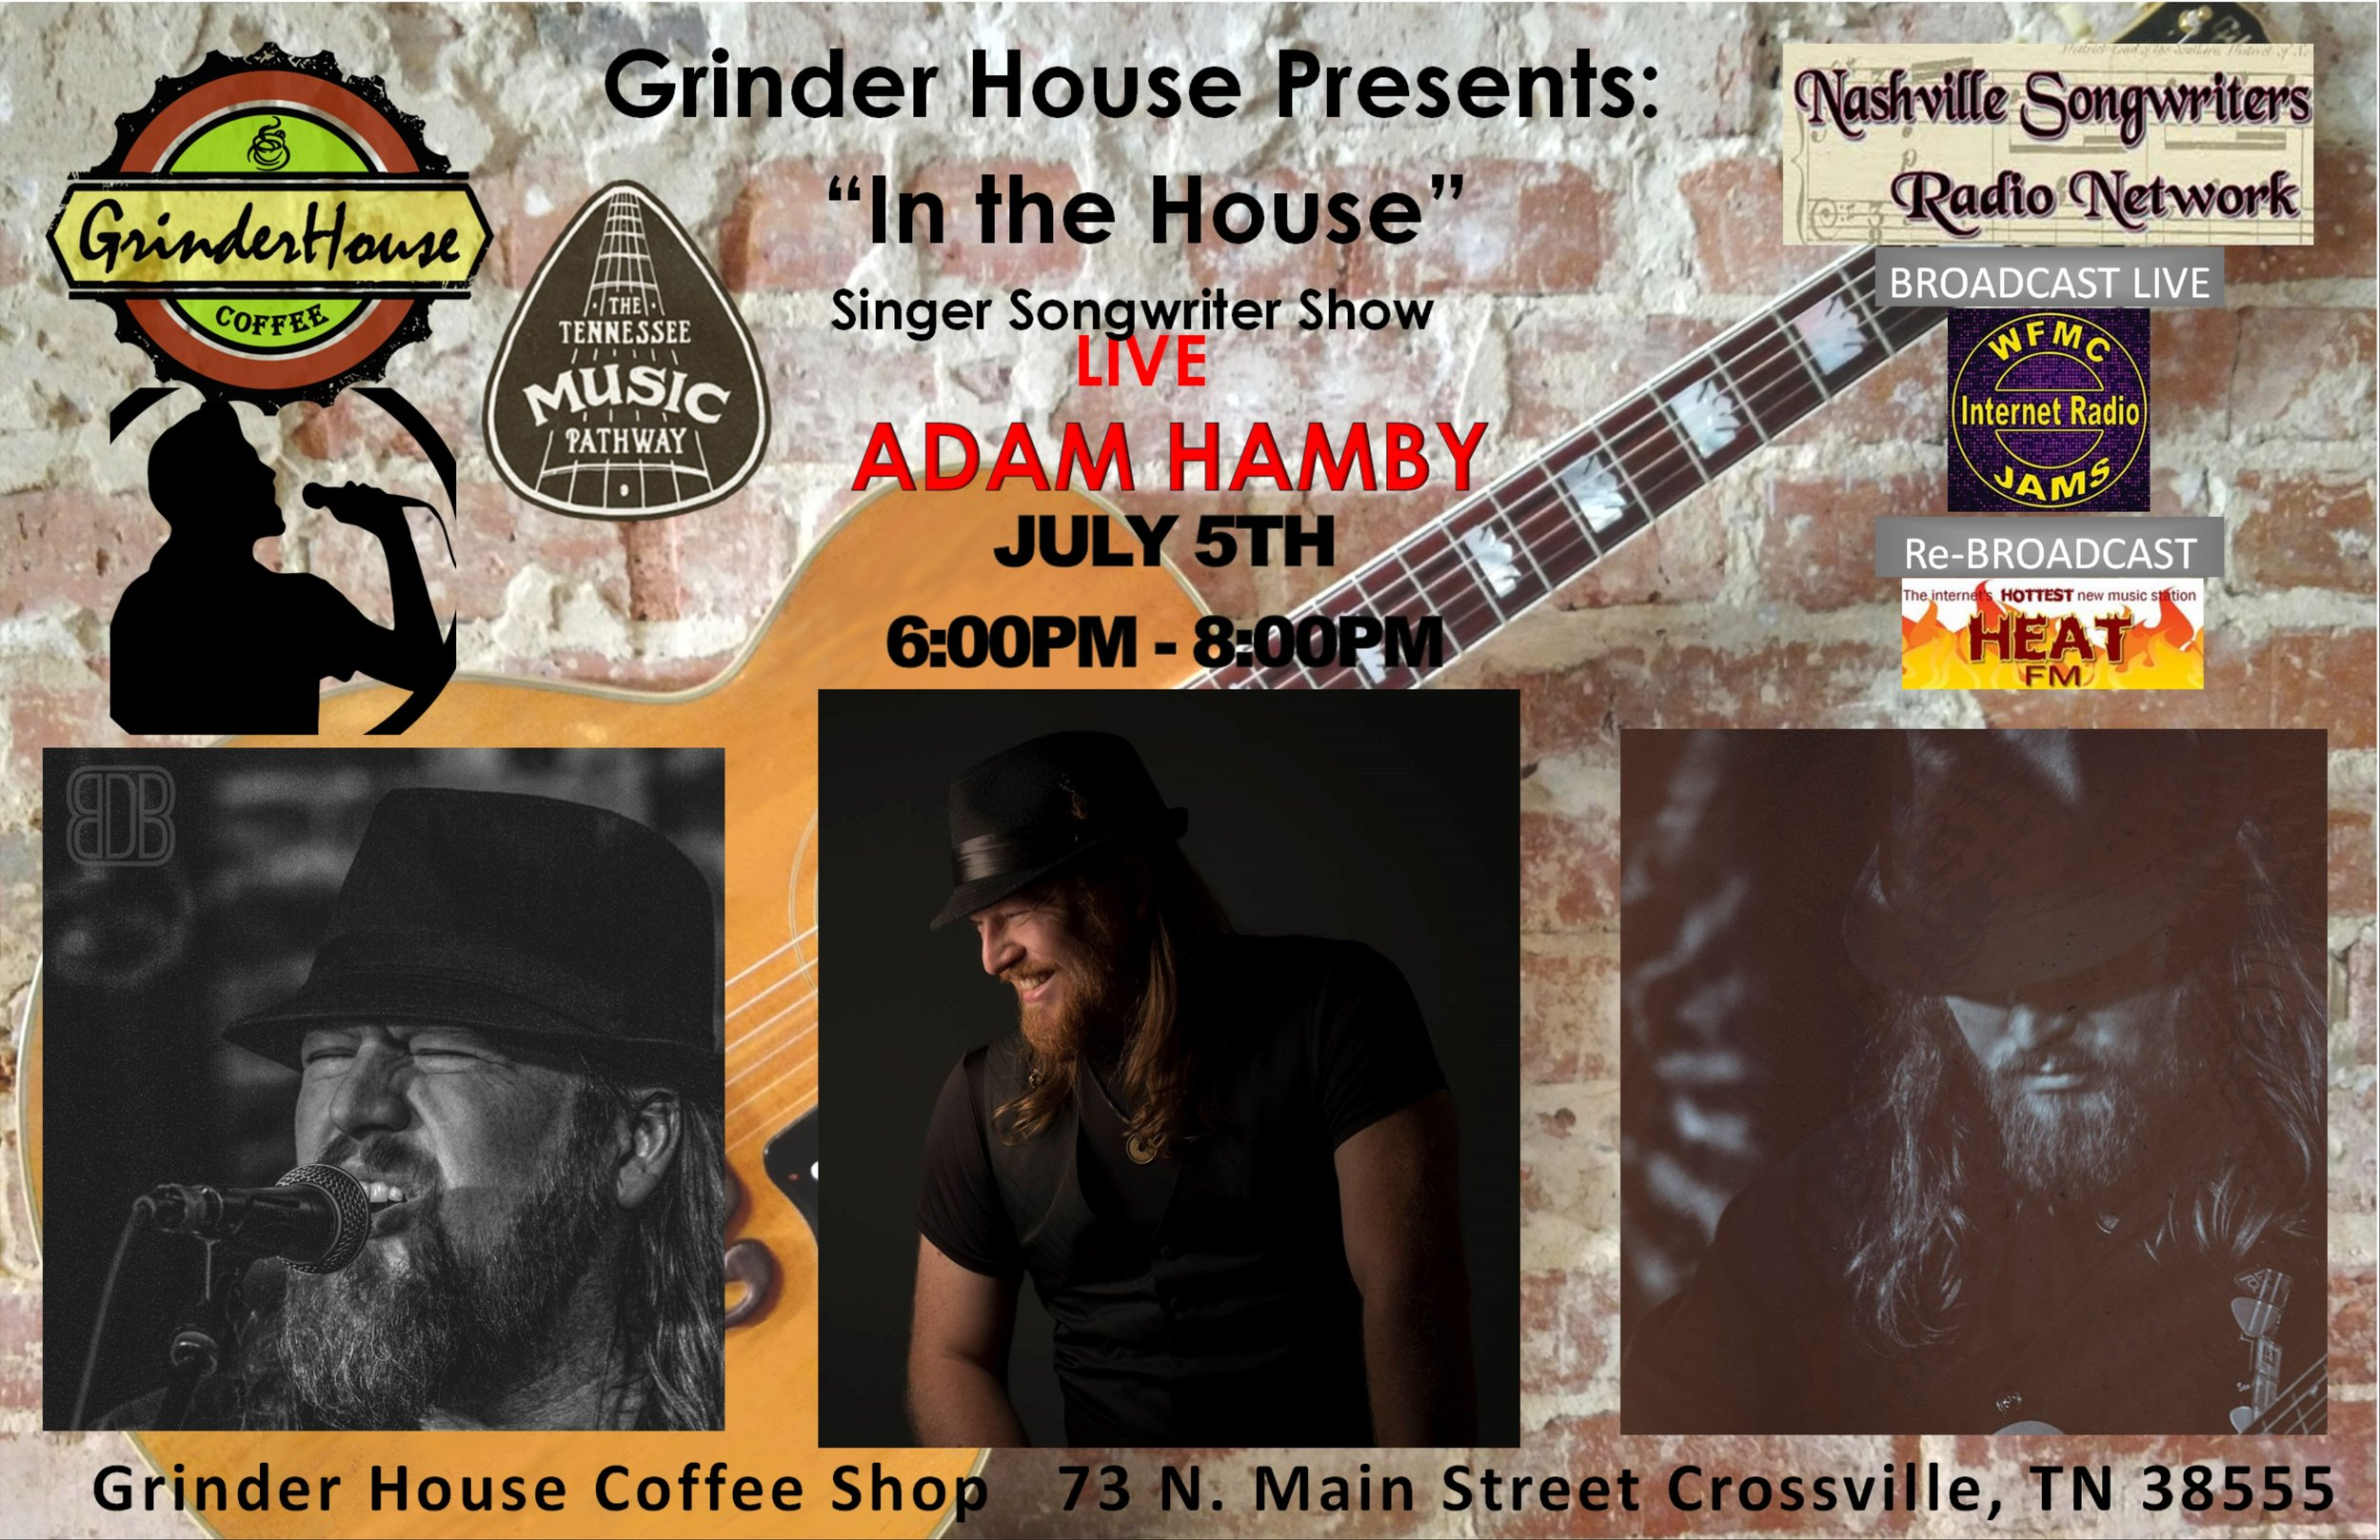 "Grinder House is honored to host: Adam Hamby WINNER of the 2018 Smoky Mountain Songwriter Fesatival. The Dark Waters Project is a Nashville based band that plays what they like to call, Darkgrass. Their music is a blend of multiple genre's but is greatly influenced by Bluegrass and Alternative Rock. The band has a long list of previously played venues and positive reviews from people in the music industry all over Nashville. Dark Waters is led by vocal duo, Cherish Hamby and Adam Hamby. Cherish and Adam do a vast majority of the bands songwriting, with occasional covers that they love to make their own.  Adam and Cherish have had a number of different band members over the last 9 years, from small 3 piece acts to large 7 piece groups. From 2012-14, they had a 5 piece Alternative Rock band often described as The Civil Wars fronting Evanescence. They had their first collaborative album titled, ""The Rains"", produced in the Fall of 2014 by Mike Hartnett (Colt Ford, Yelawolf, Rehab, Bubba Sparxxx, will.i.am, Pink). Their new album, titled ""The Darkgrass Sessions"" is set to be fully released early in 2018 and will be their second album together. The Darkgrass Sessions was produced by Lee Groitzsch, with a number of the songs co-produced by Noel Golden.  Adam is one of the founding members of the band and is one of two lead vocals. He has been the lead singer of 3 different bands over the last decade, releasing an EP with 2 of them (The Fifth Seal 2005; Stonesfall 2007) and then a solo album titled ""Trails,"" in 2003. Influenced heavily by his Christian faith, he writes and sings from his soul and it can be heard in both his voice and lyrics. He had a song reach Christian radio in the mid 2000's called, ""Mercedes"" with his former band, The Fifth Seal.  Cherish is one of the founding members of Dark Waters and is also one of the lead vocalists. She is often seen as the face of Dark Waters. Her voice is as stirring, beautiful and unique as Stevie Nicks or Jewel, but it's all her own. She has worked with some of the best that Nashville has to offer. Mark Miller and Garth Brooks paid for and offered some of Garth's band members to record her first album in 2001 – the entire EP was produced, engineered and paid for by Mark Miller of Forerunner, Jacks Tracks and Allentown Studios (production and engineering credits include Garth Brooks, Trisha Yearwood, Kathy Mattea, Chris LeDoux, George Jones). A few of the songs got quite a bit of radio play all over the Southeast US in the early 2000's. She has also been produced by George Cocchini (Third Day, DC Talk, Rich Mullins, Sawyer Brown, Steven Curtis Chapman). She released her second self-titled EP ""Cherish"" in 2001, but is now the heart of the Dark Waters Project."